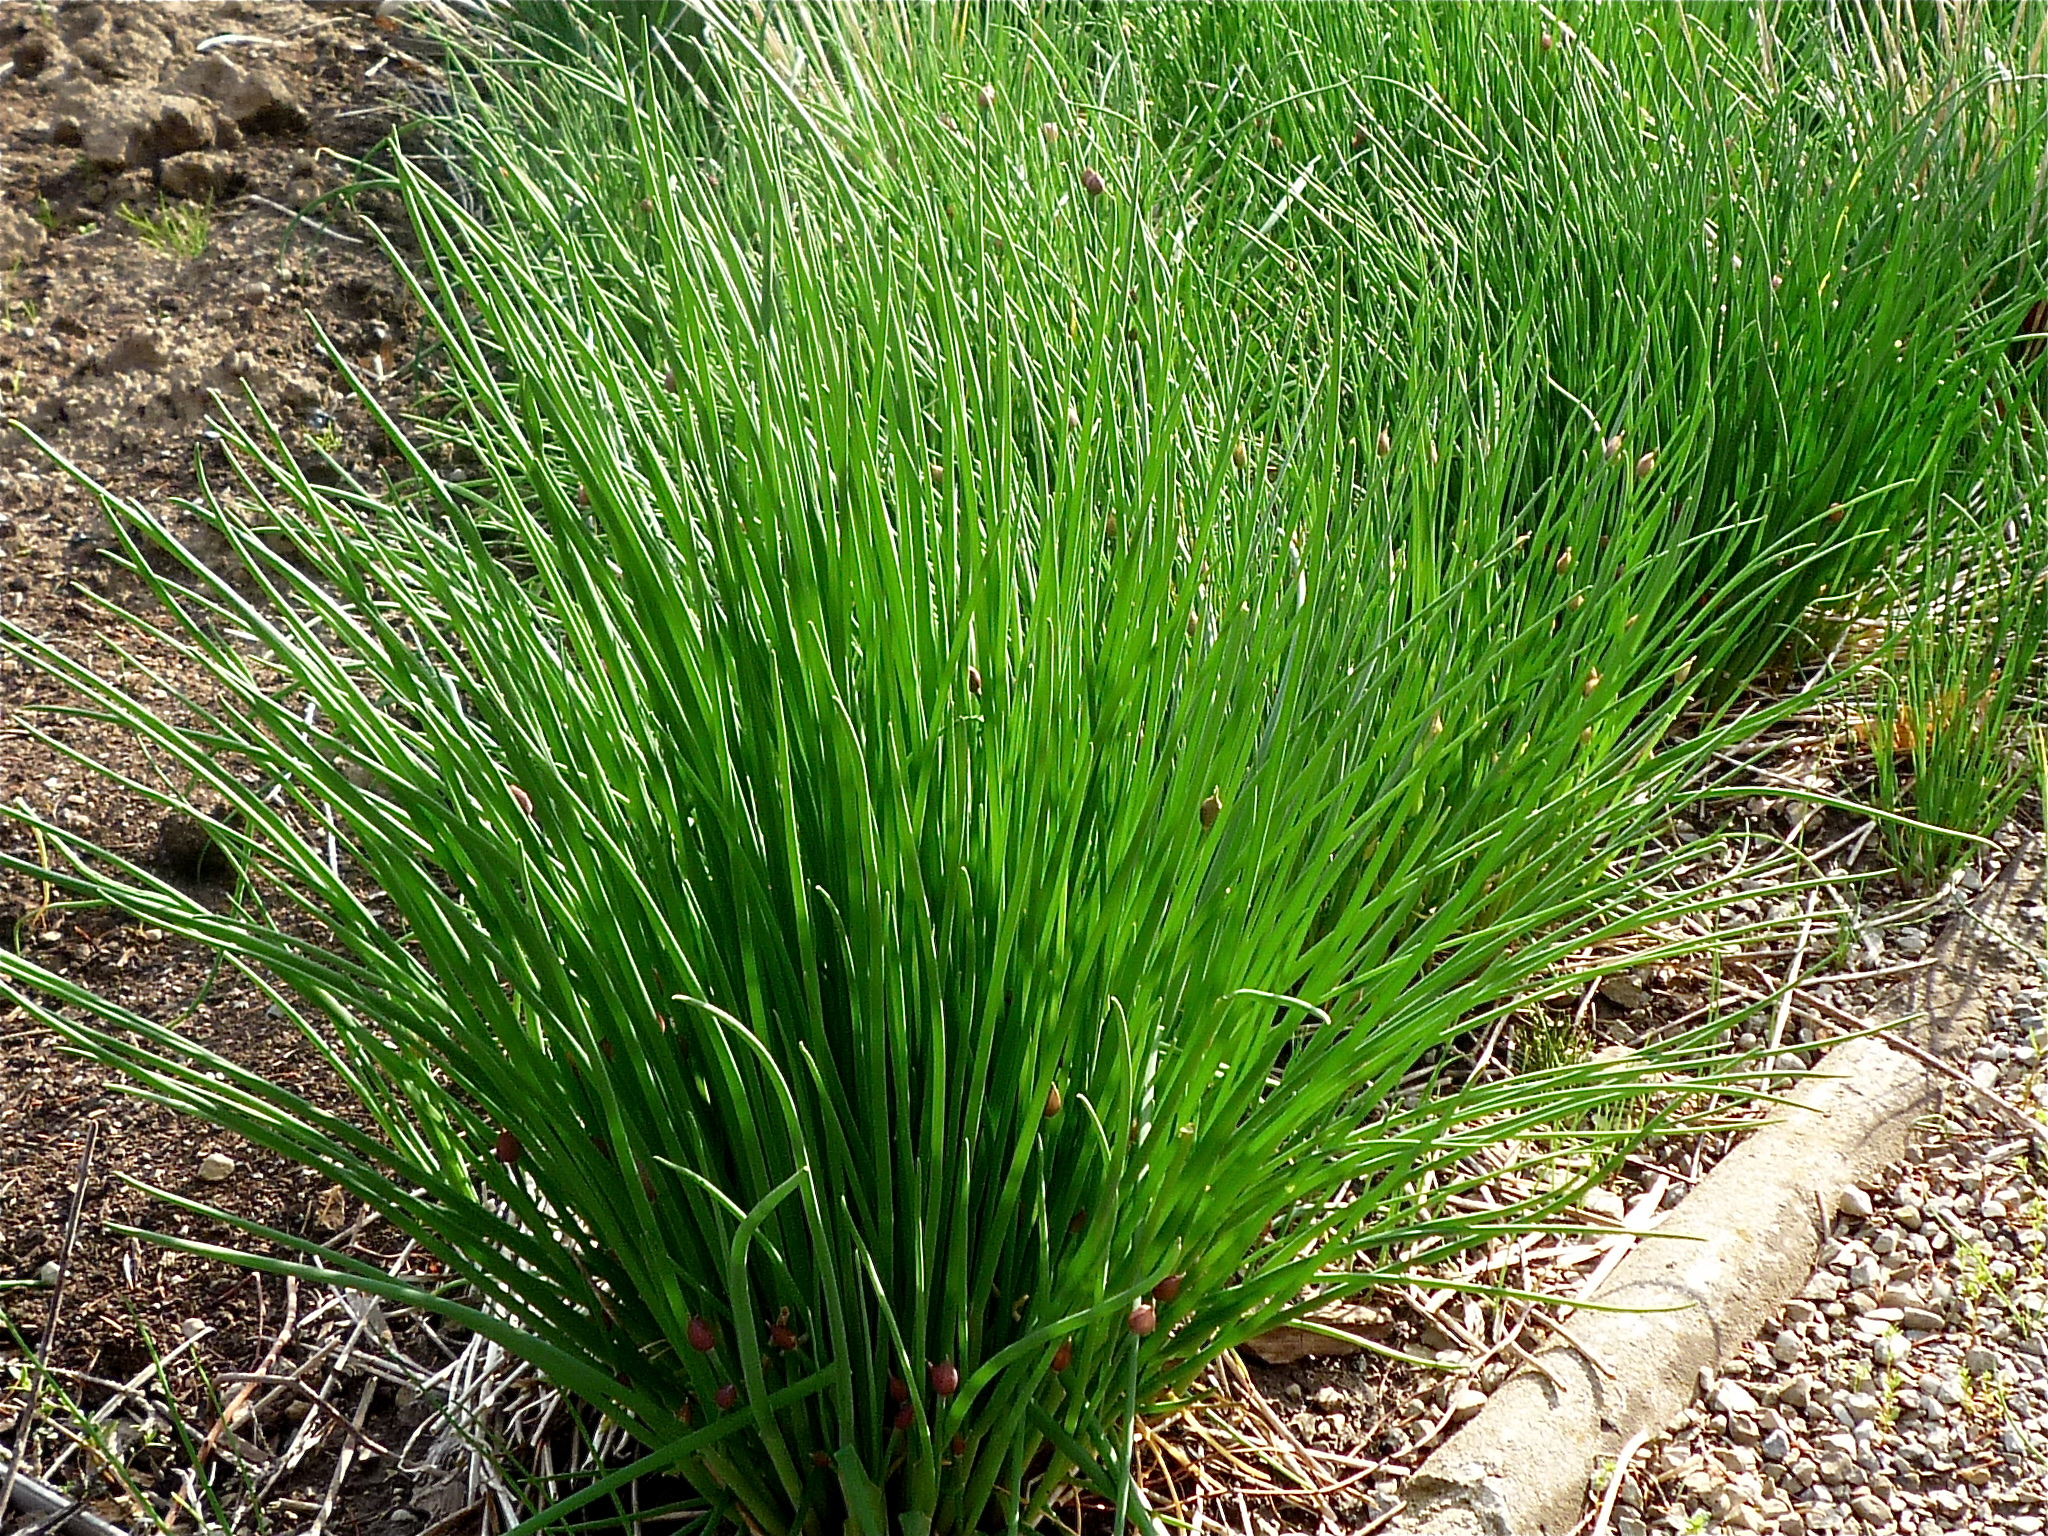 Chives are perennials and will reappear each spring in your garden